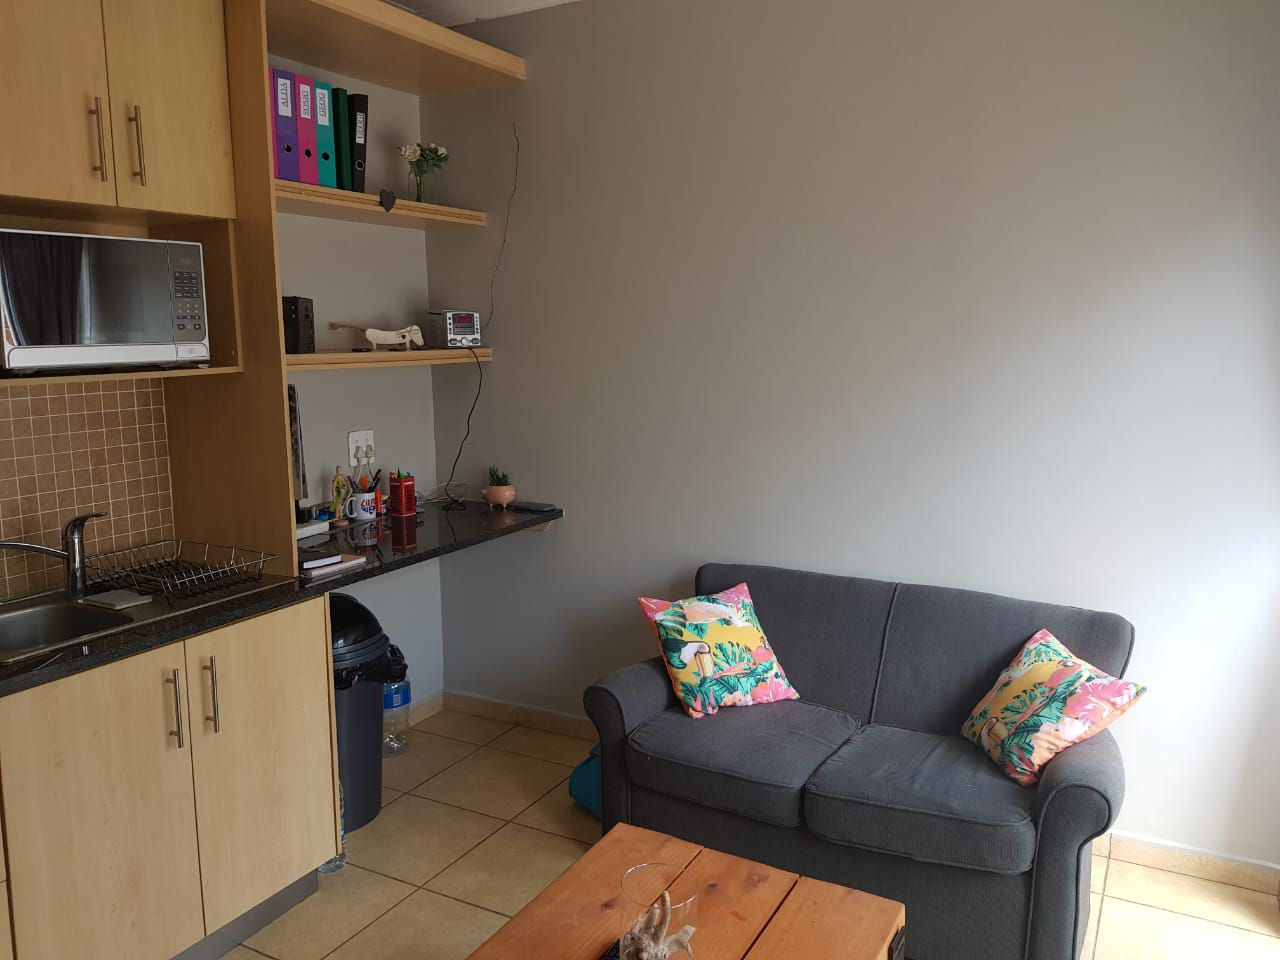 Apartment in Bult - WhatsApp Image 2020-02-05 at 10.16.50 (1).jpeg